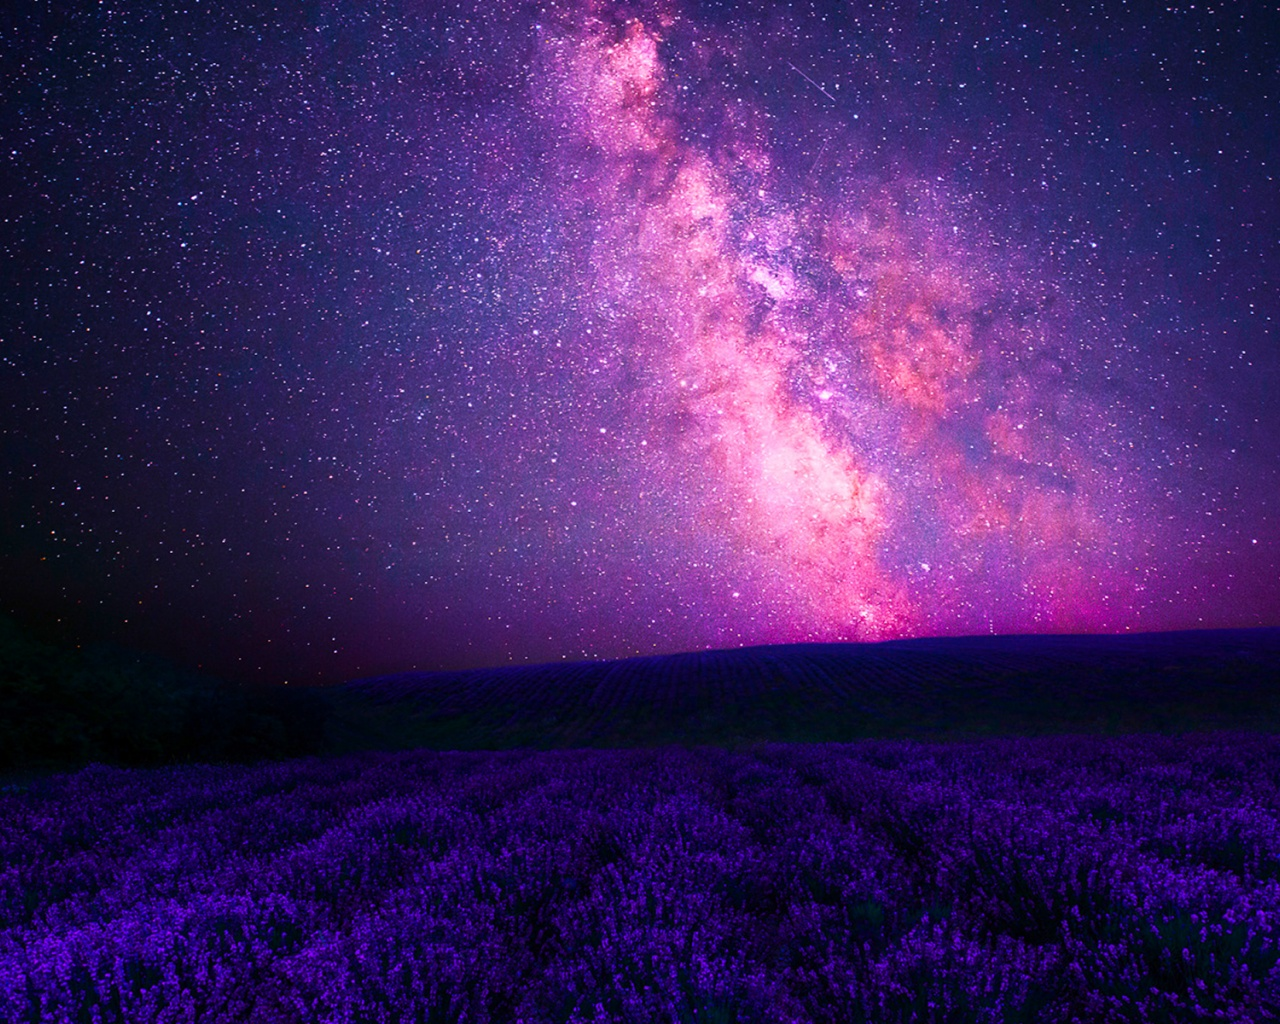 1280x1024 pink galaxy amp purple lavender desktop pc and mac